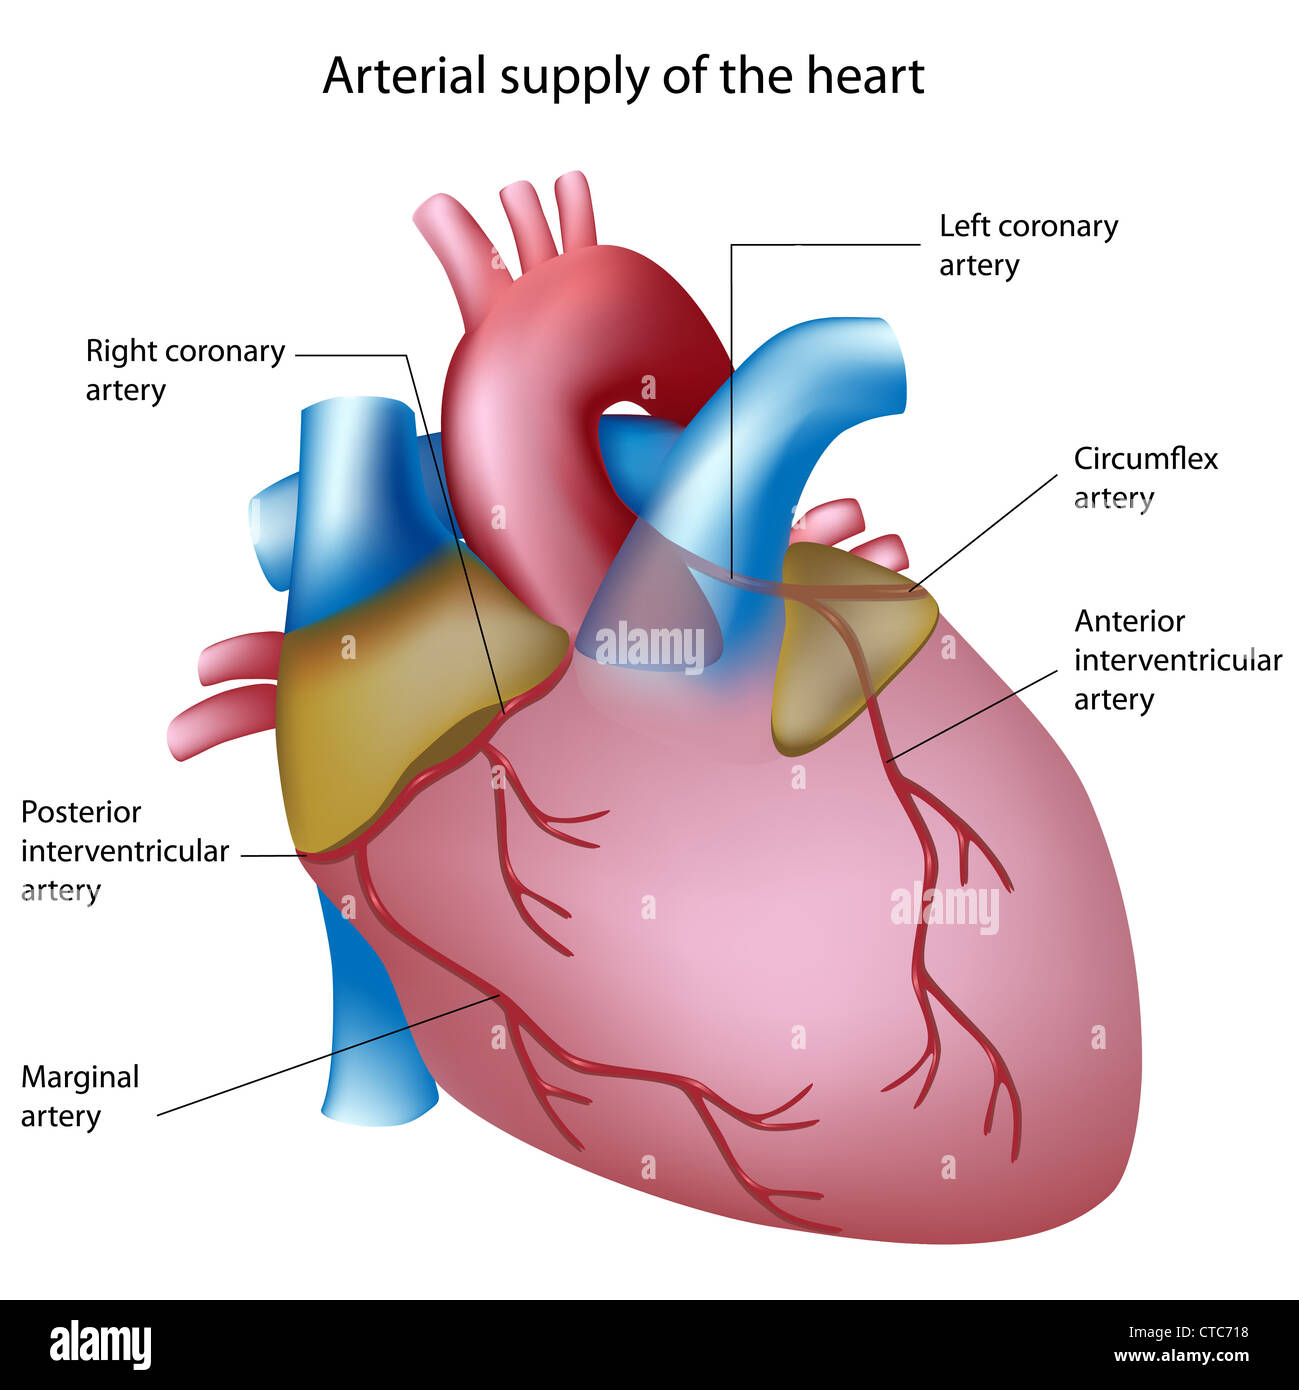 coronary arteries diagram branches immersion switch wiring left circumflex artery stock photos and